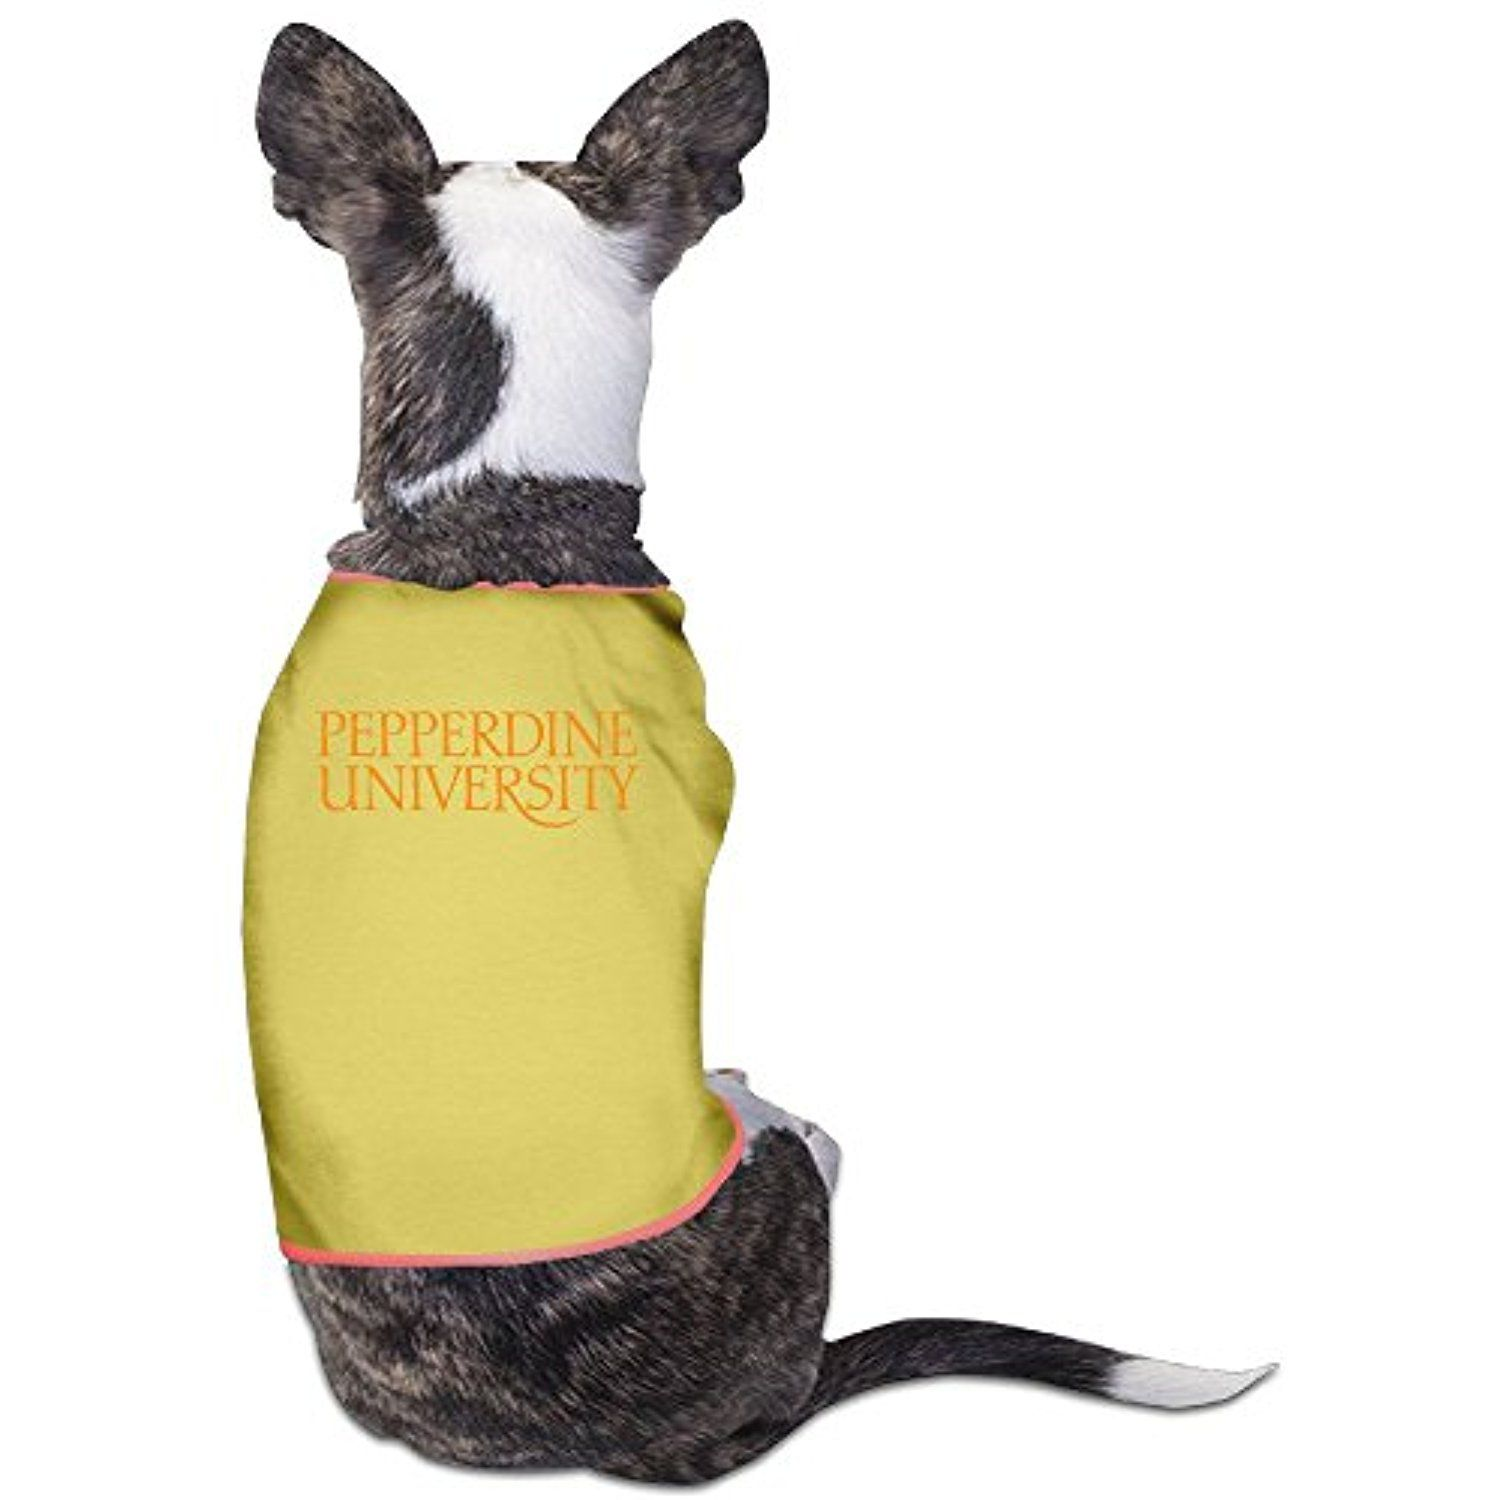 Pepperdine University Logo Pet Clothes Yellow You Can Read More